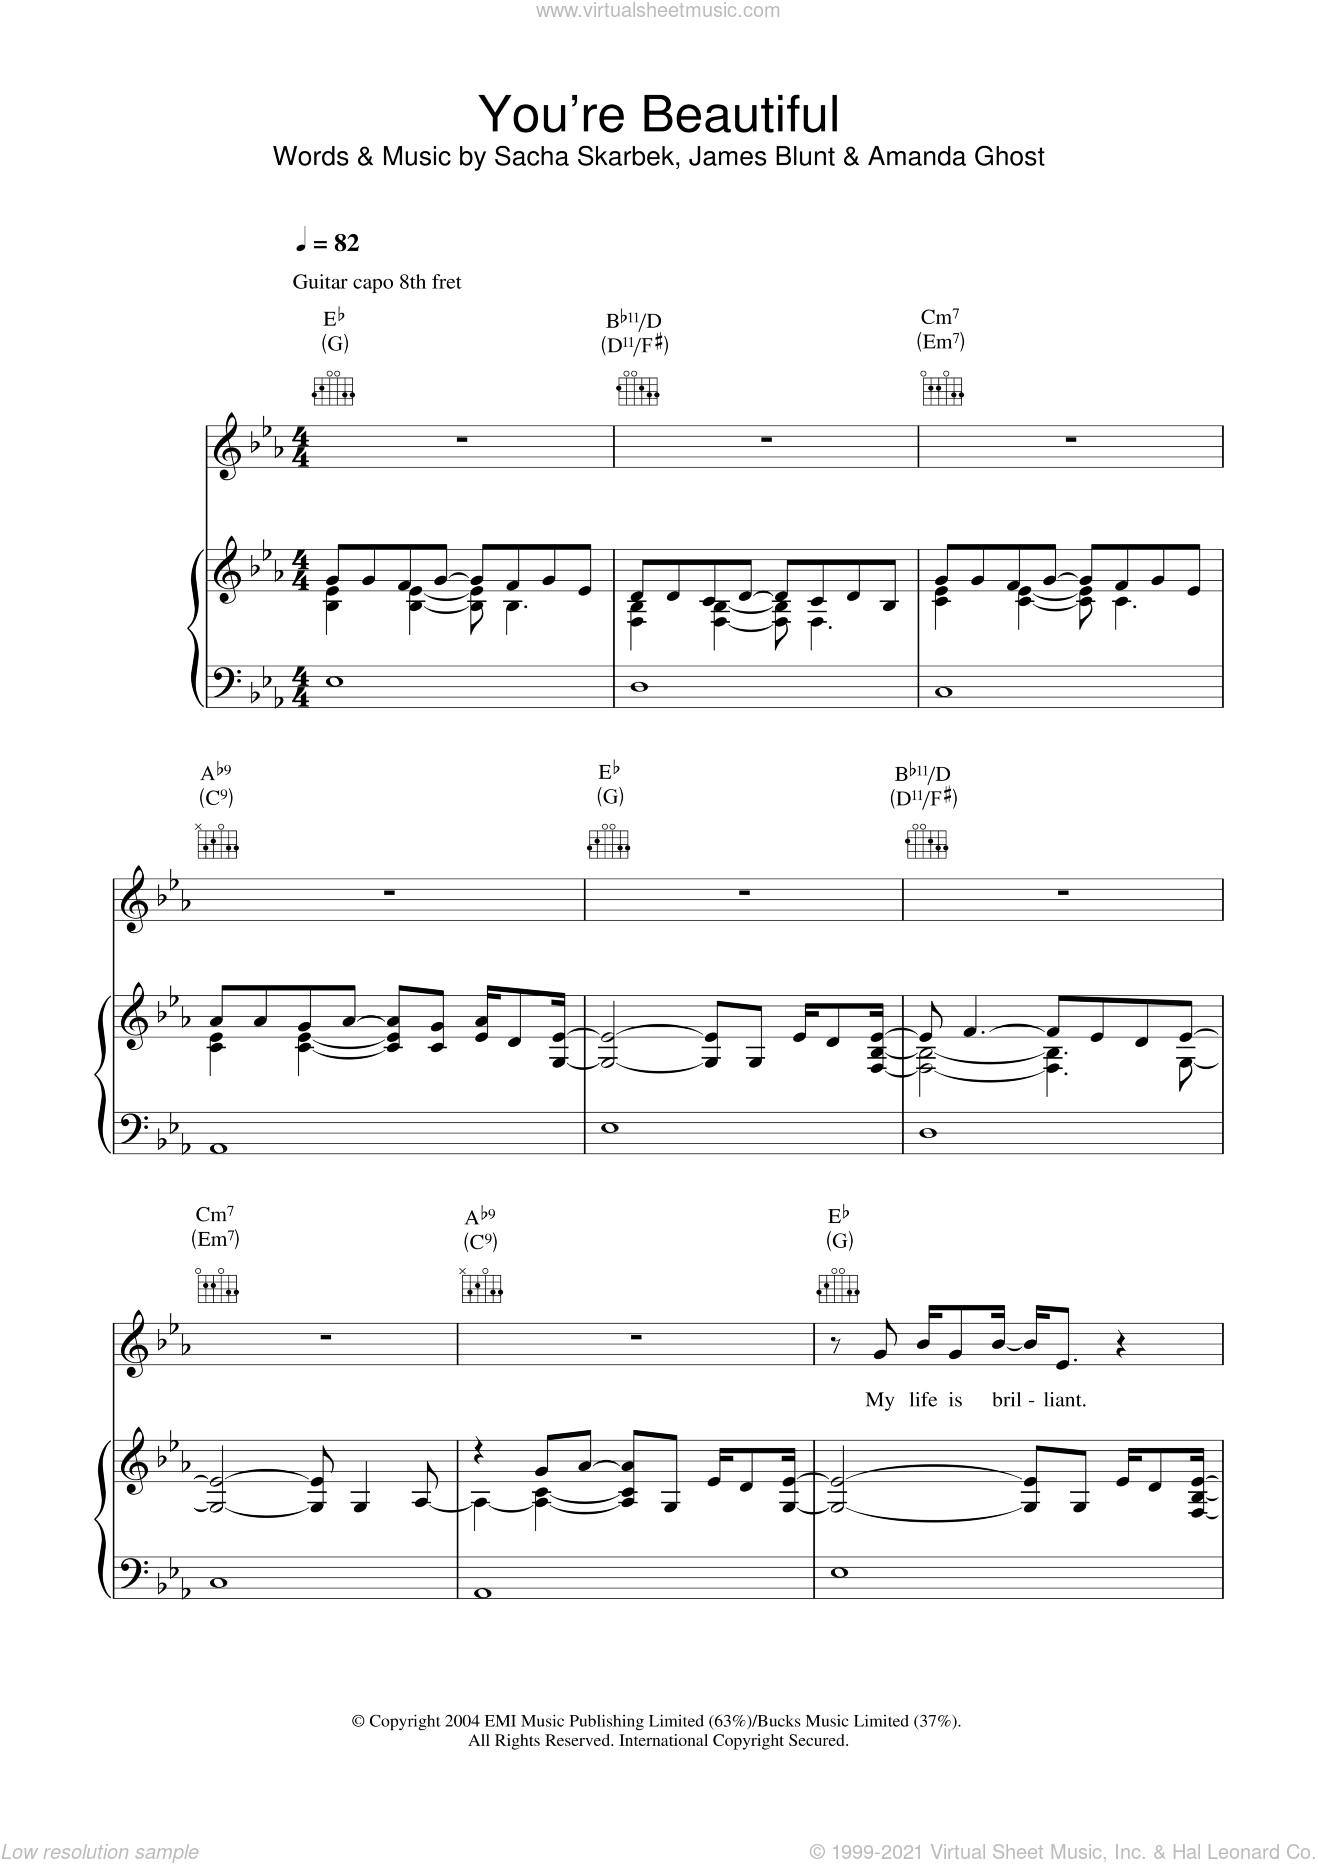 You're Beautiful sheet music for voice, piano or guitar by Sacha Skarbek